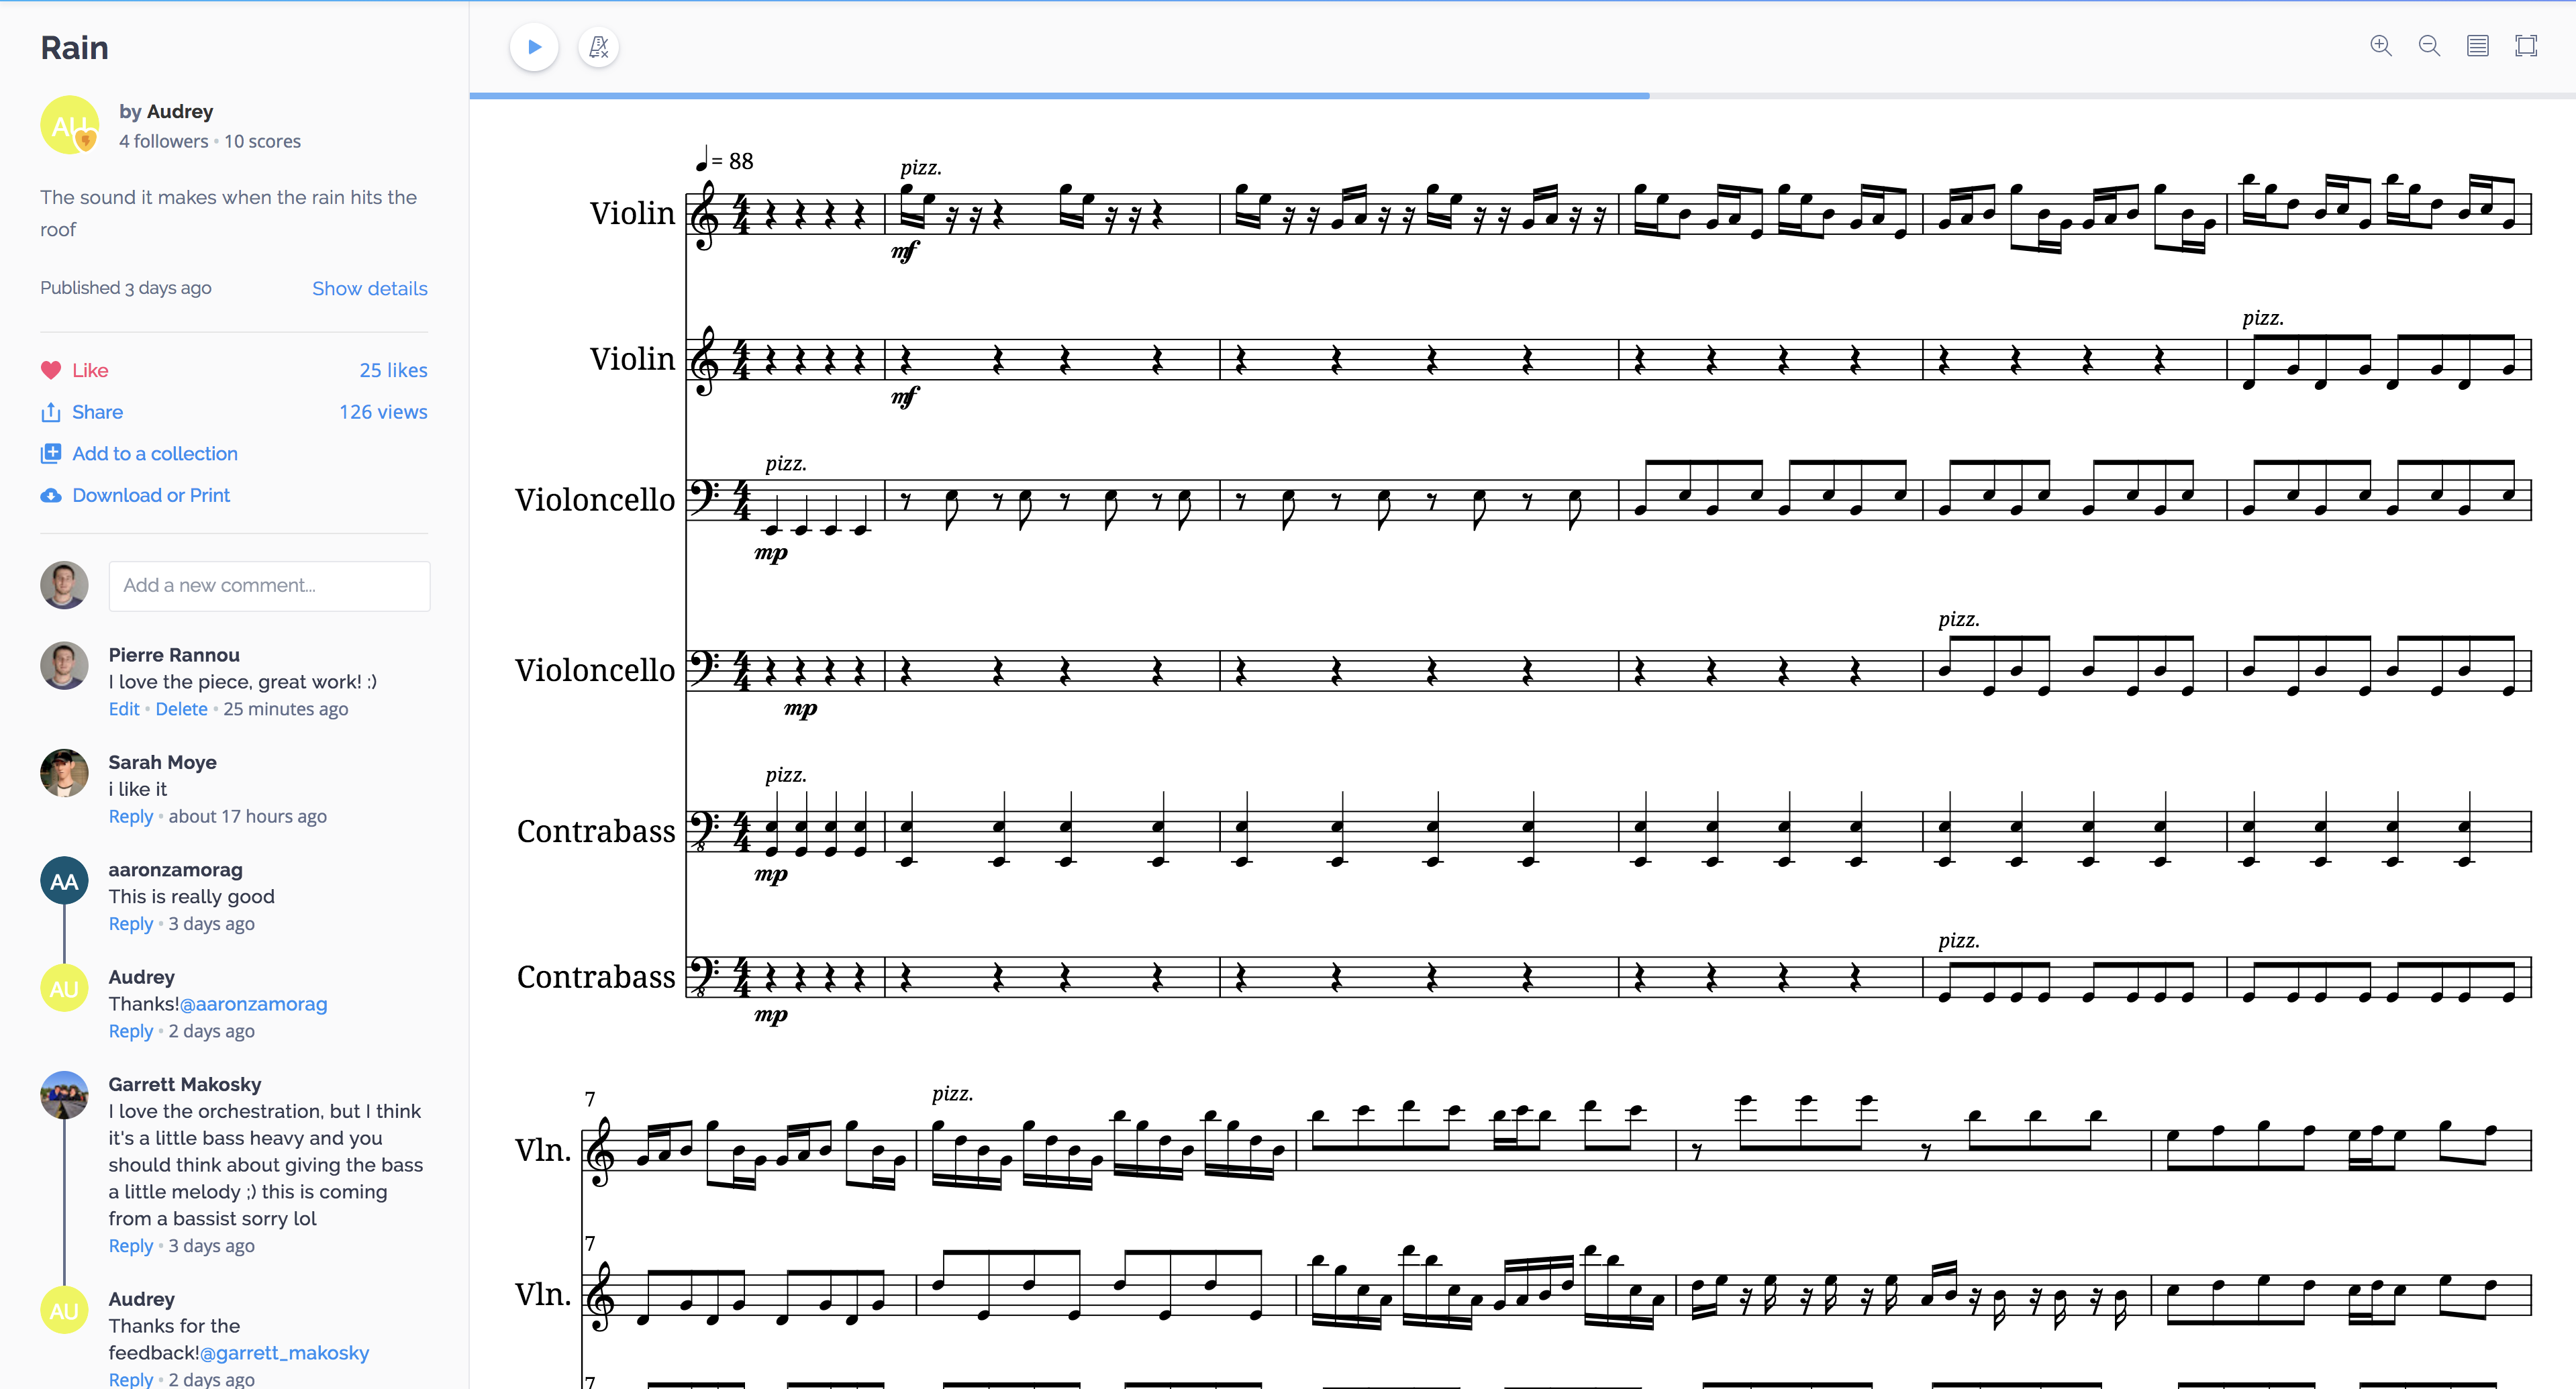 Flat's new sheet music viewer